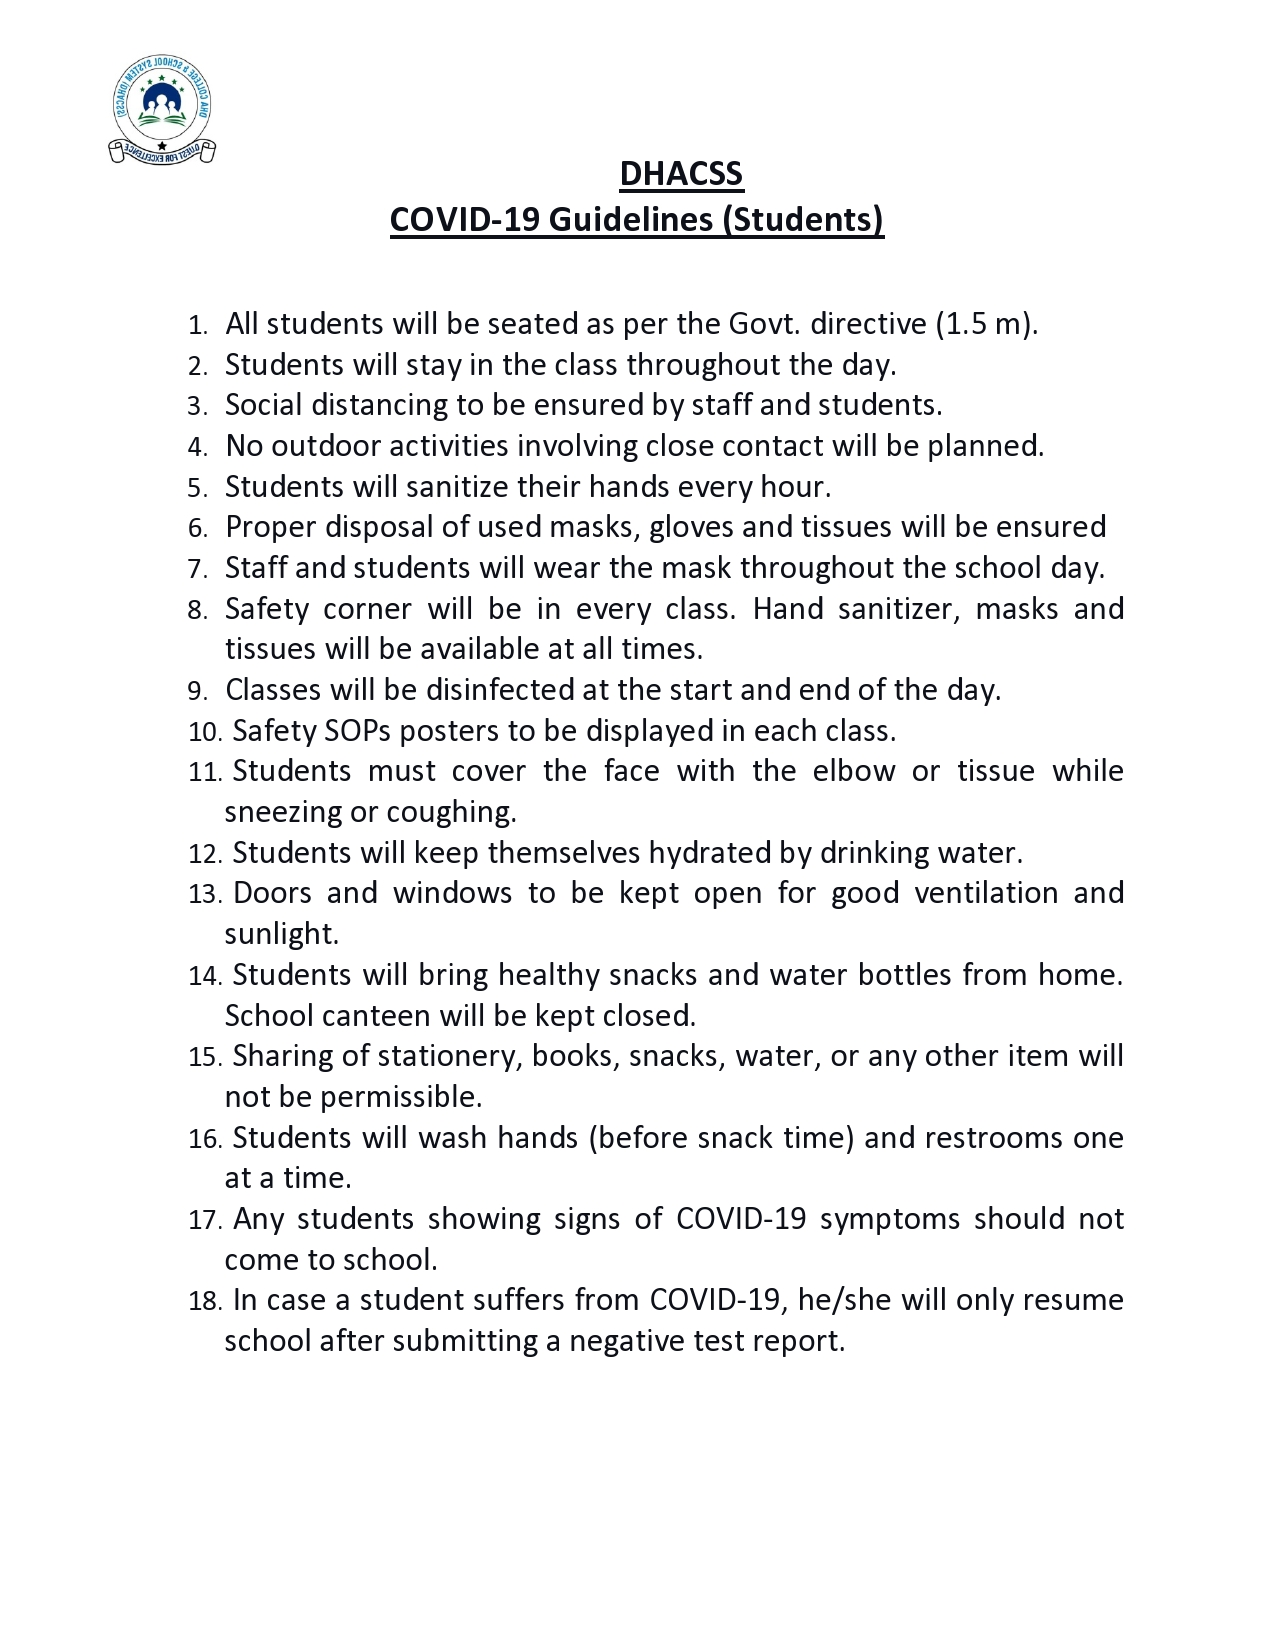 DHACSS COVID Checklist for Students